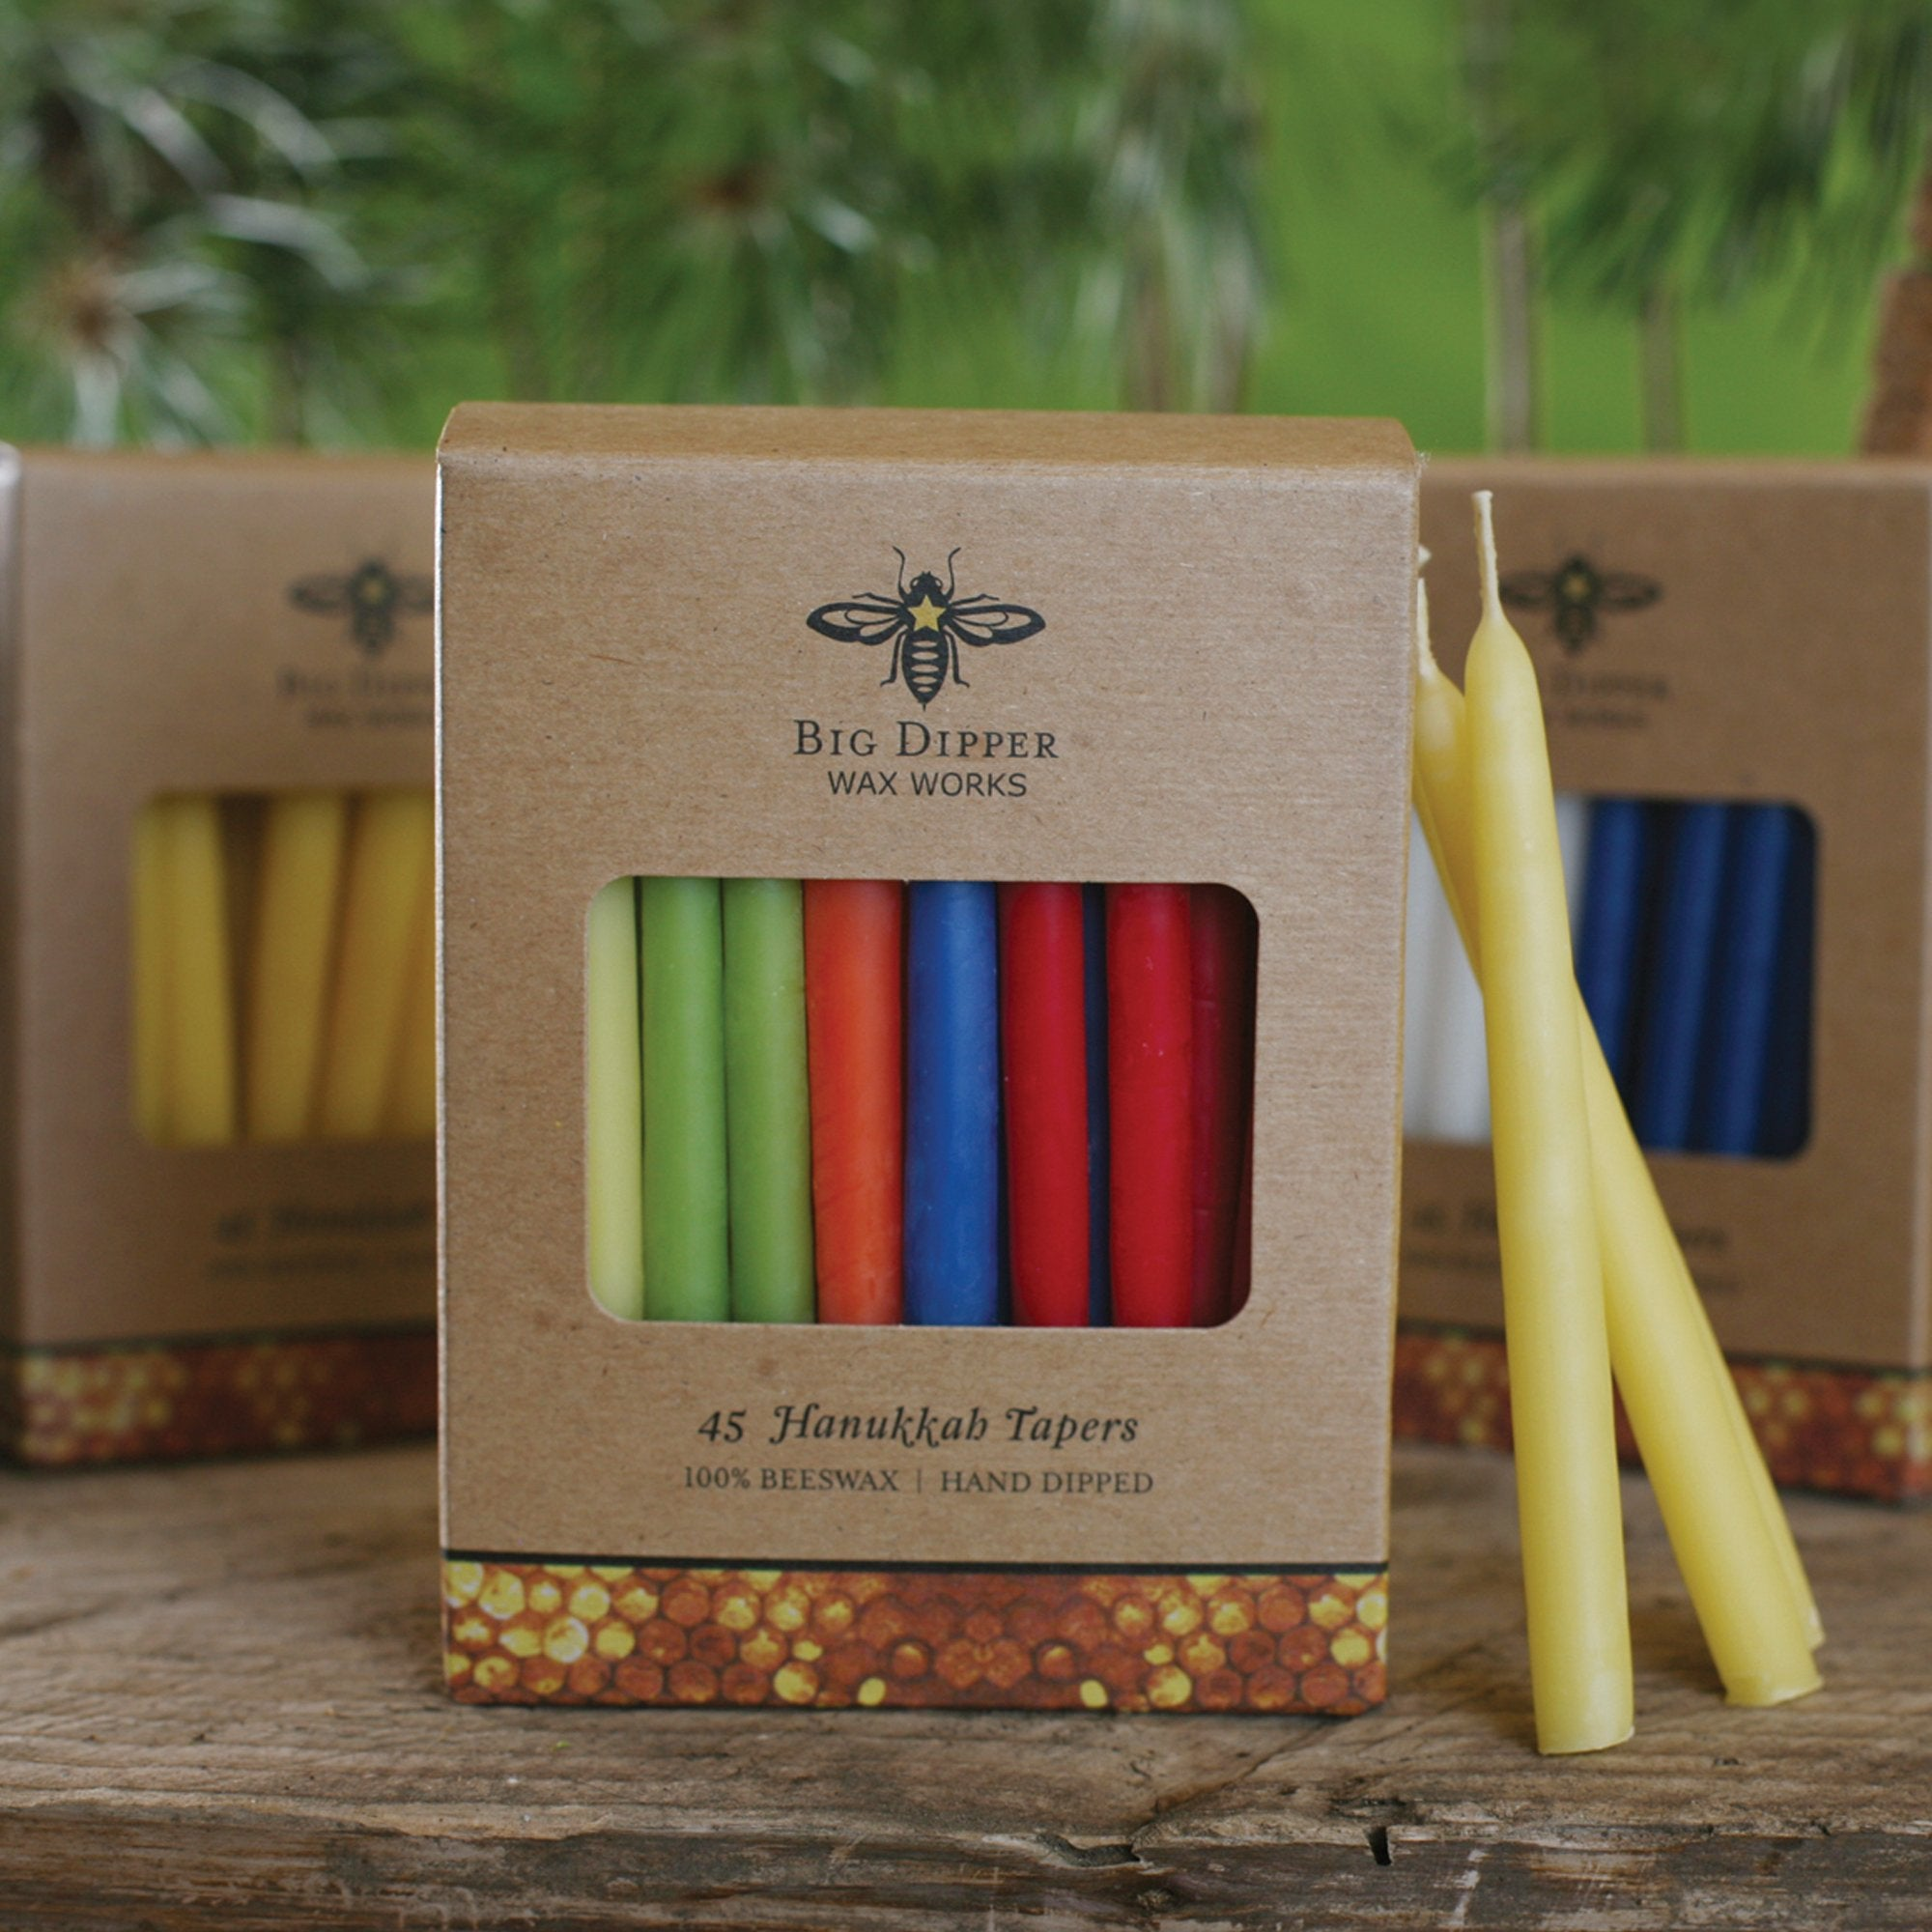 cardboard pack of 45 multicolored hanukkah tapered beeswax candles, dispalyed in front of two other packages on a wooden tabletop with a green forest backdrop